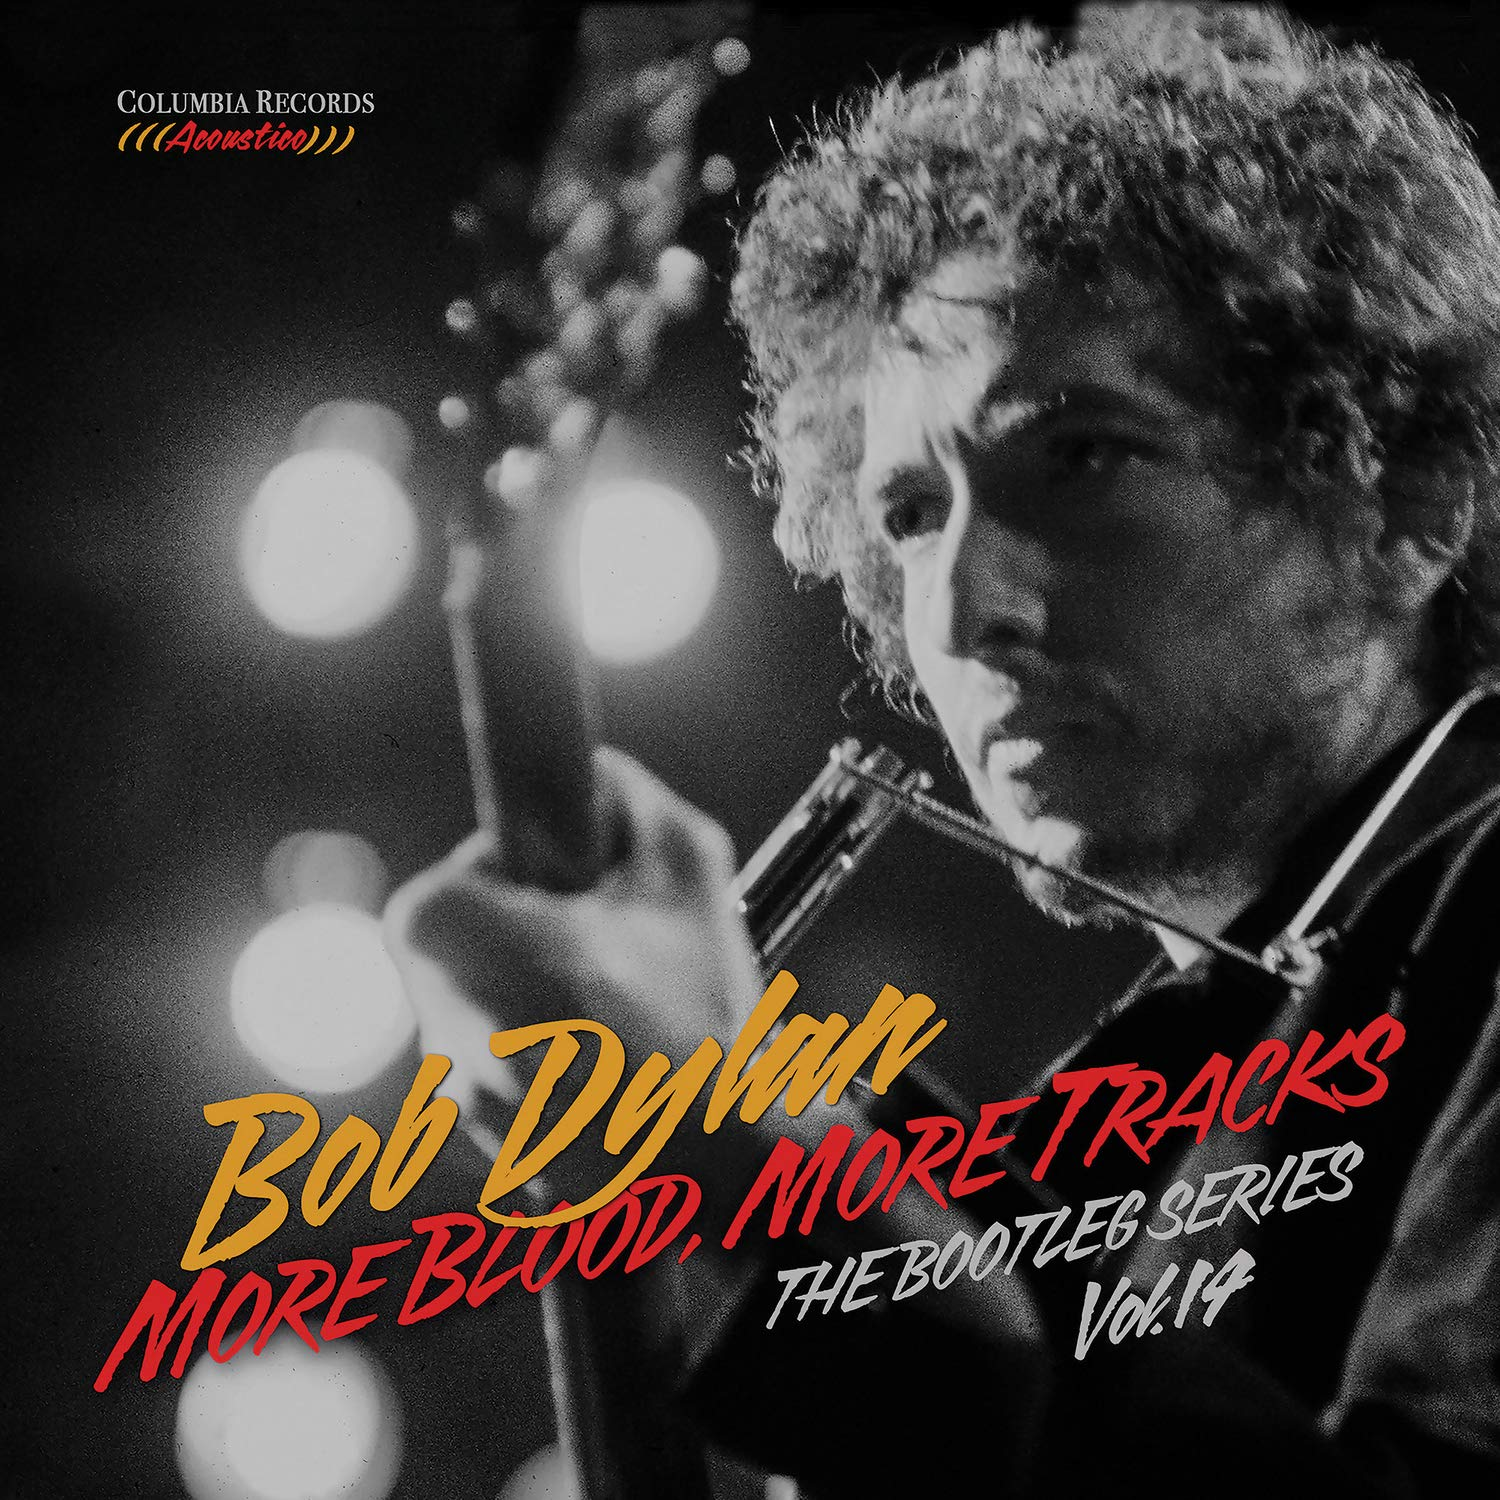 CD : Bob Dylan - More Blood More Tracks: The Bootleg Series, Vol. 14 (CD)